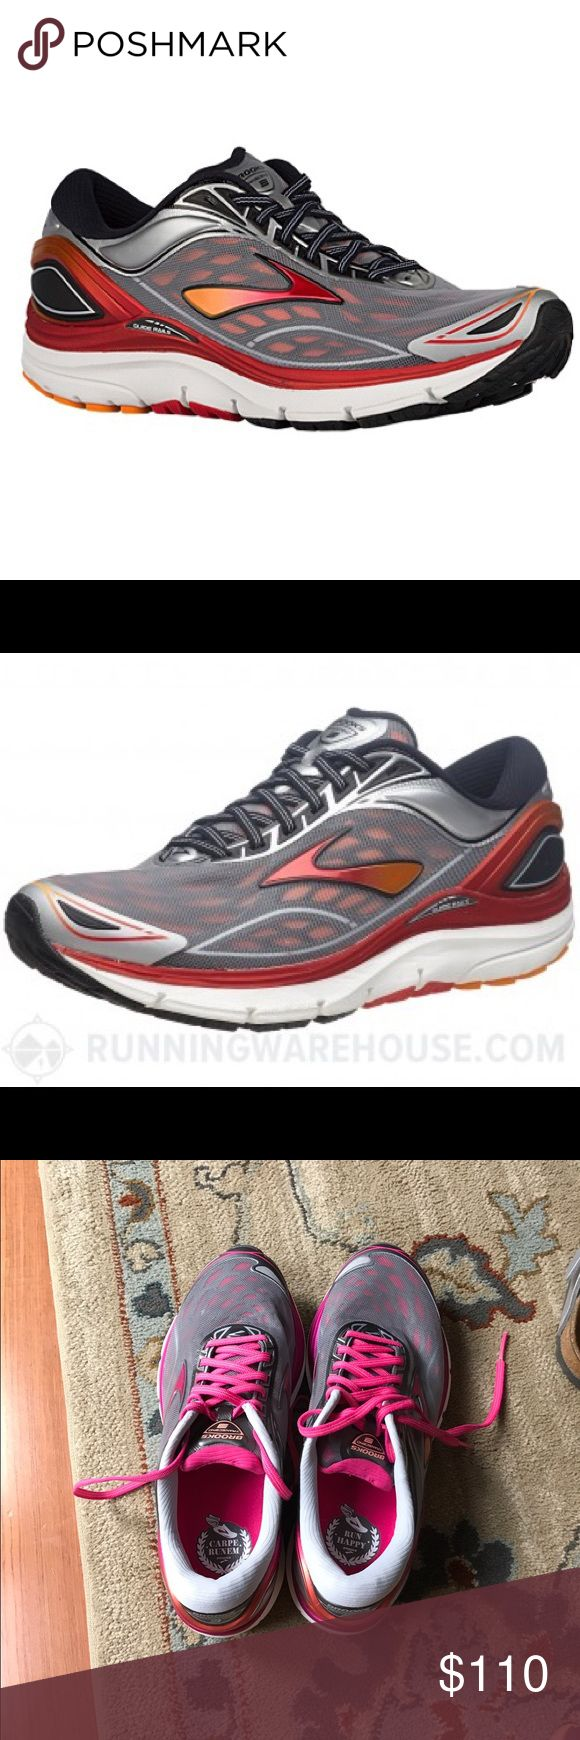 Brooks sneakers Brand new retail for $169.  These women's running shoes are our most cushioned style with great support. Perfect for the runner who may pronate, this shoe goes even further, addressing how the entire body moves. ... The Transcend 3 is our most technically-advanced running shoe for women, so go ahead—safely .. Brooks Shoes Sneakers